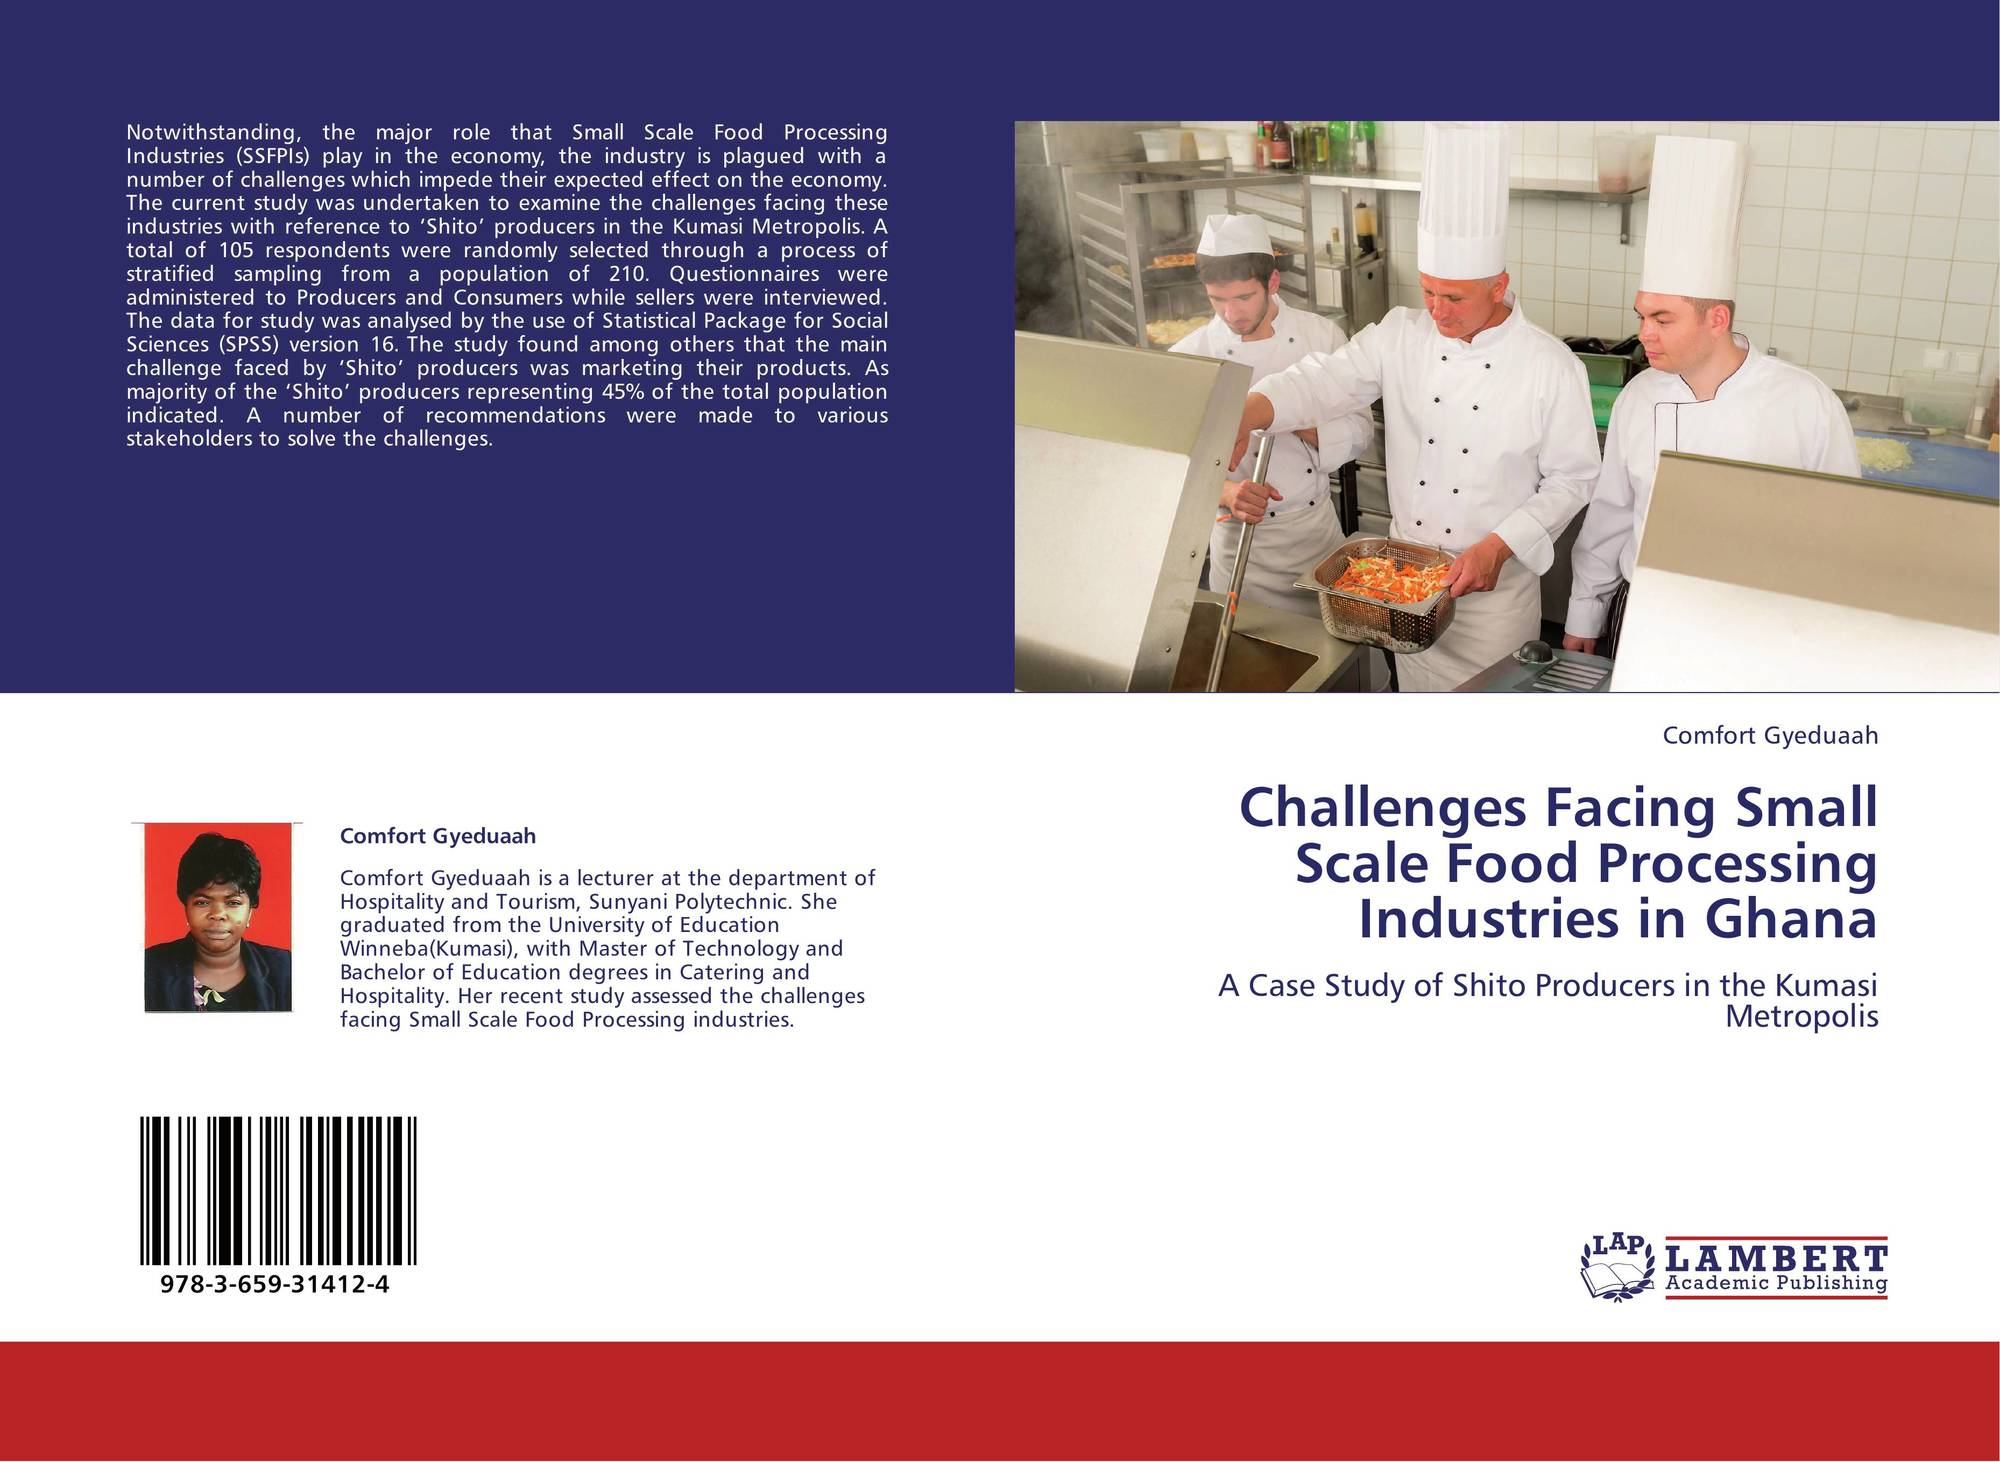 Challenges Facing Small Scale Food Processing Industries in